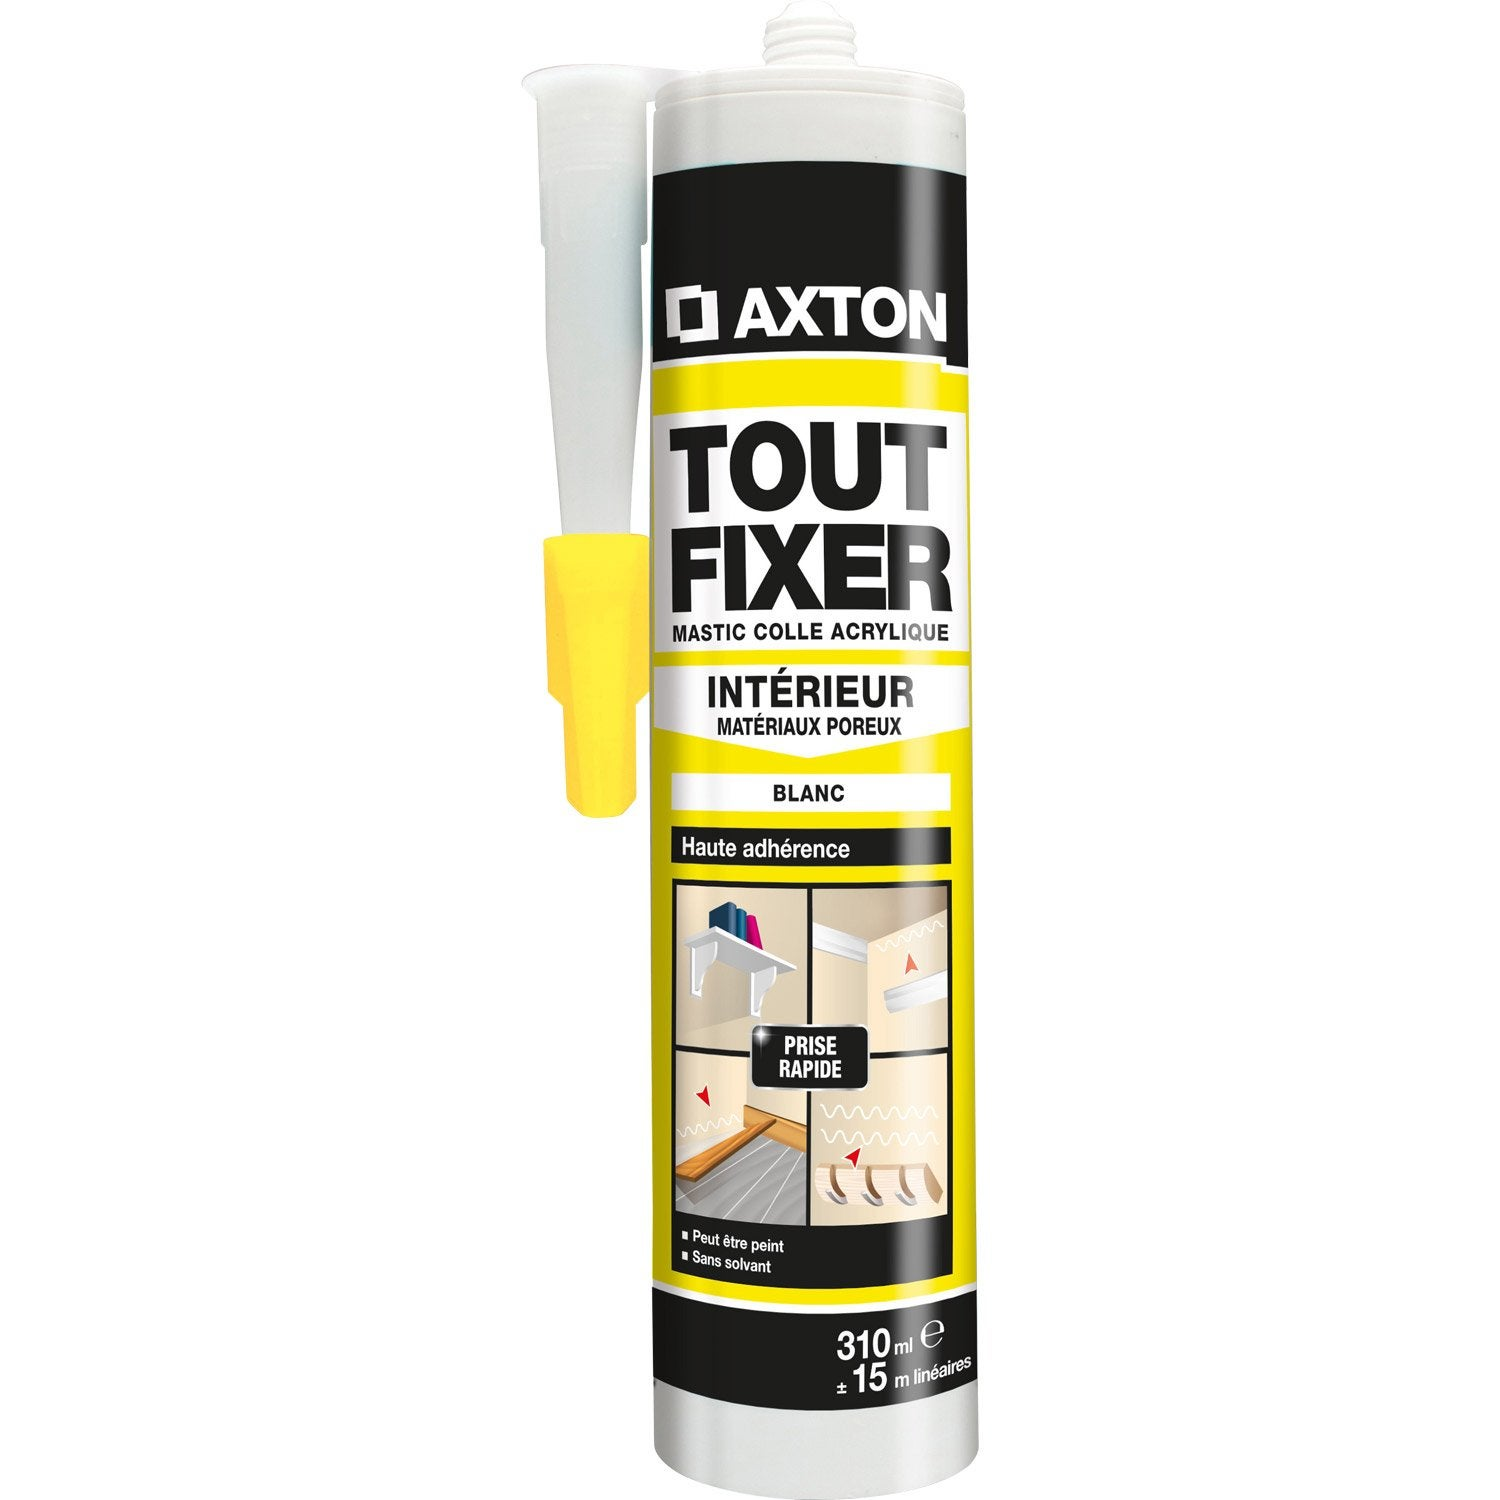 Colle mastic tout fixer axton 310 ml leroy merlin for Colle pour carrelage exterieur